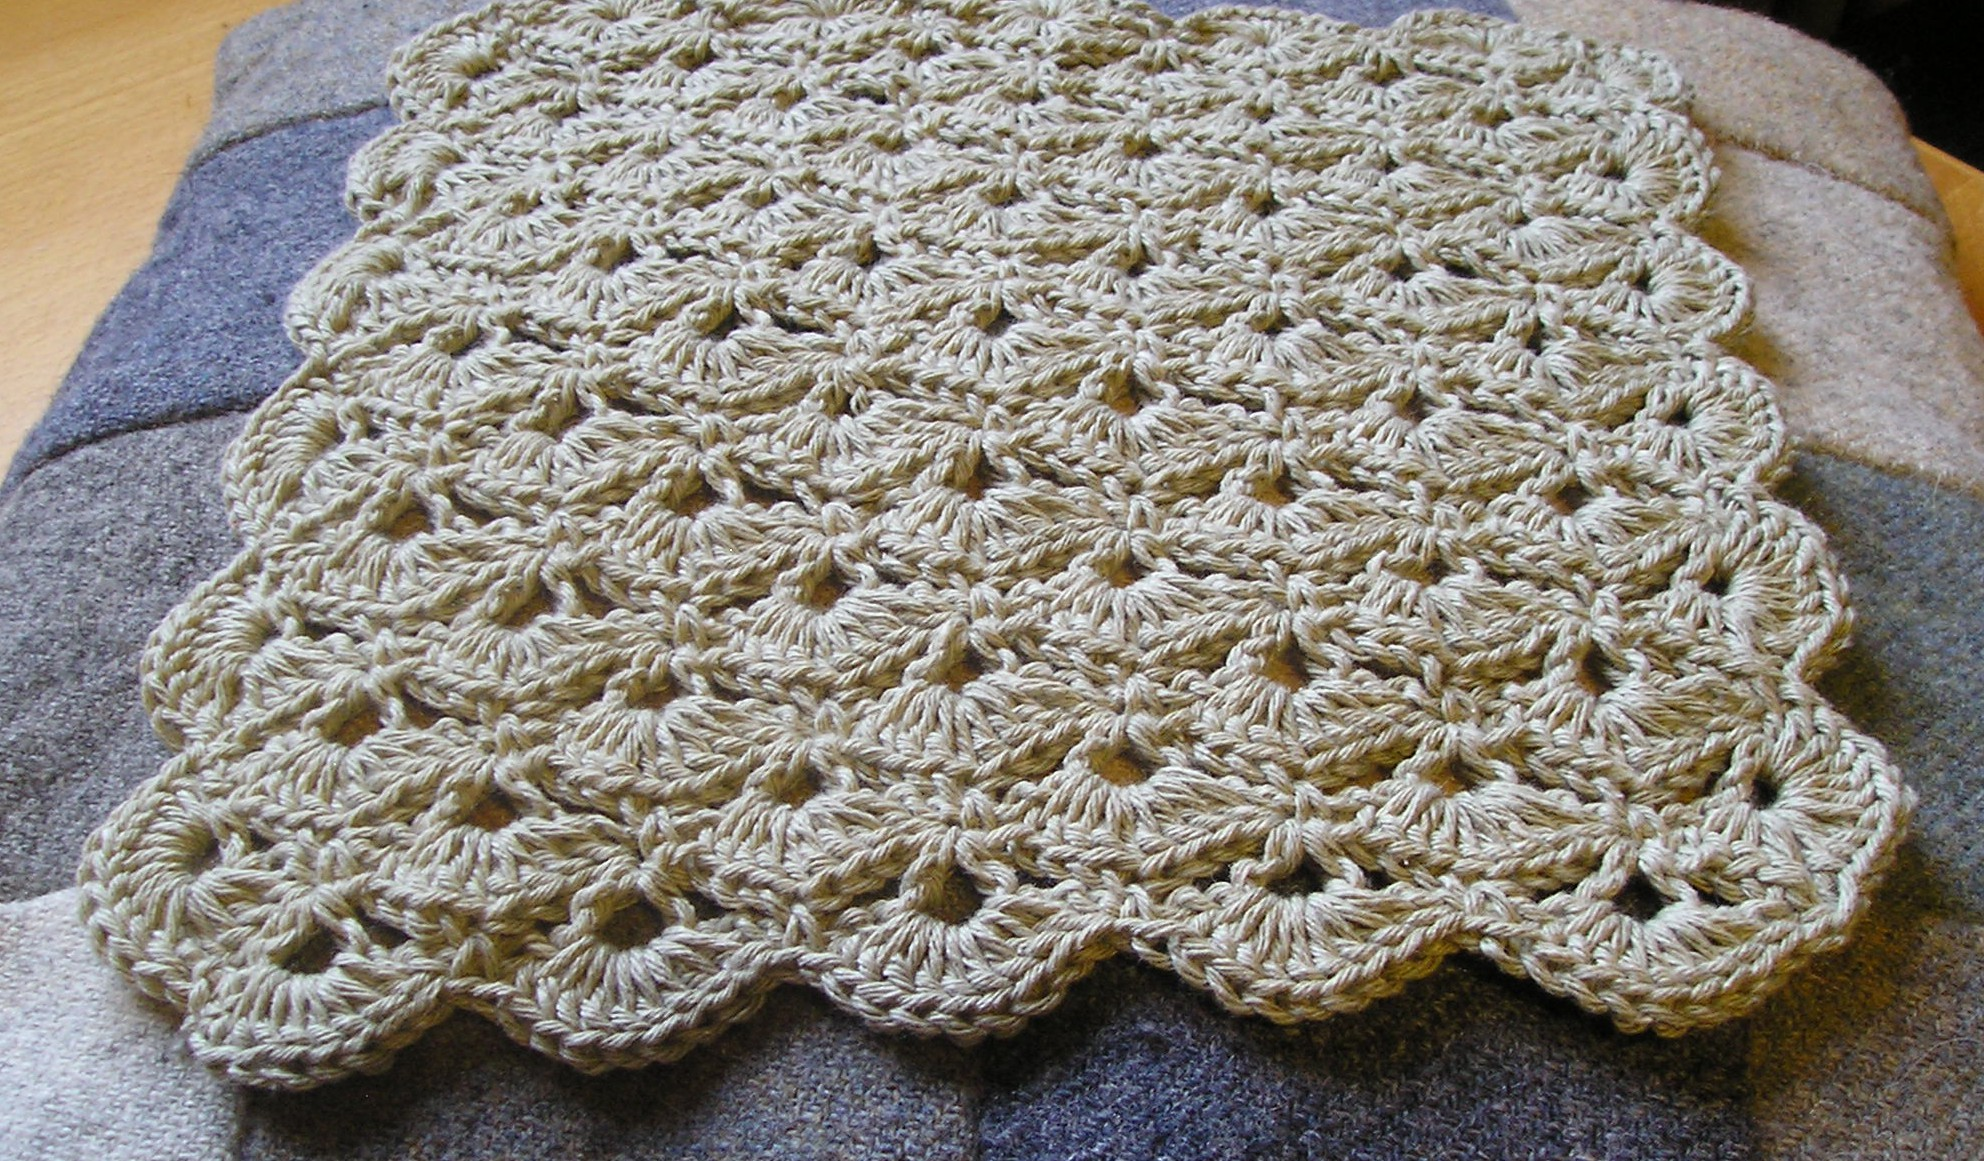 200 Crochet Stitches Simply Hooked